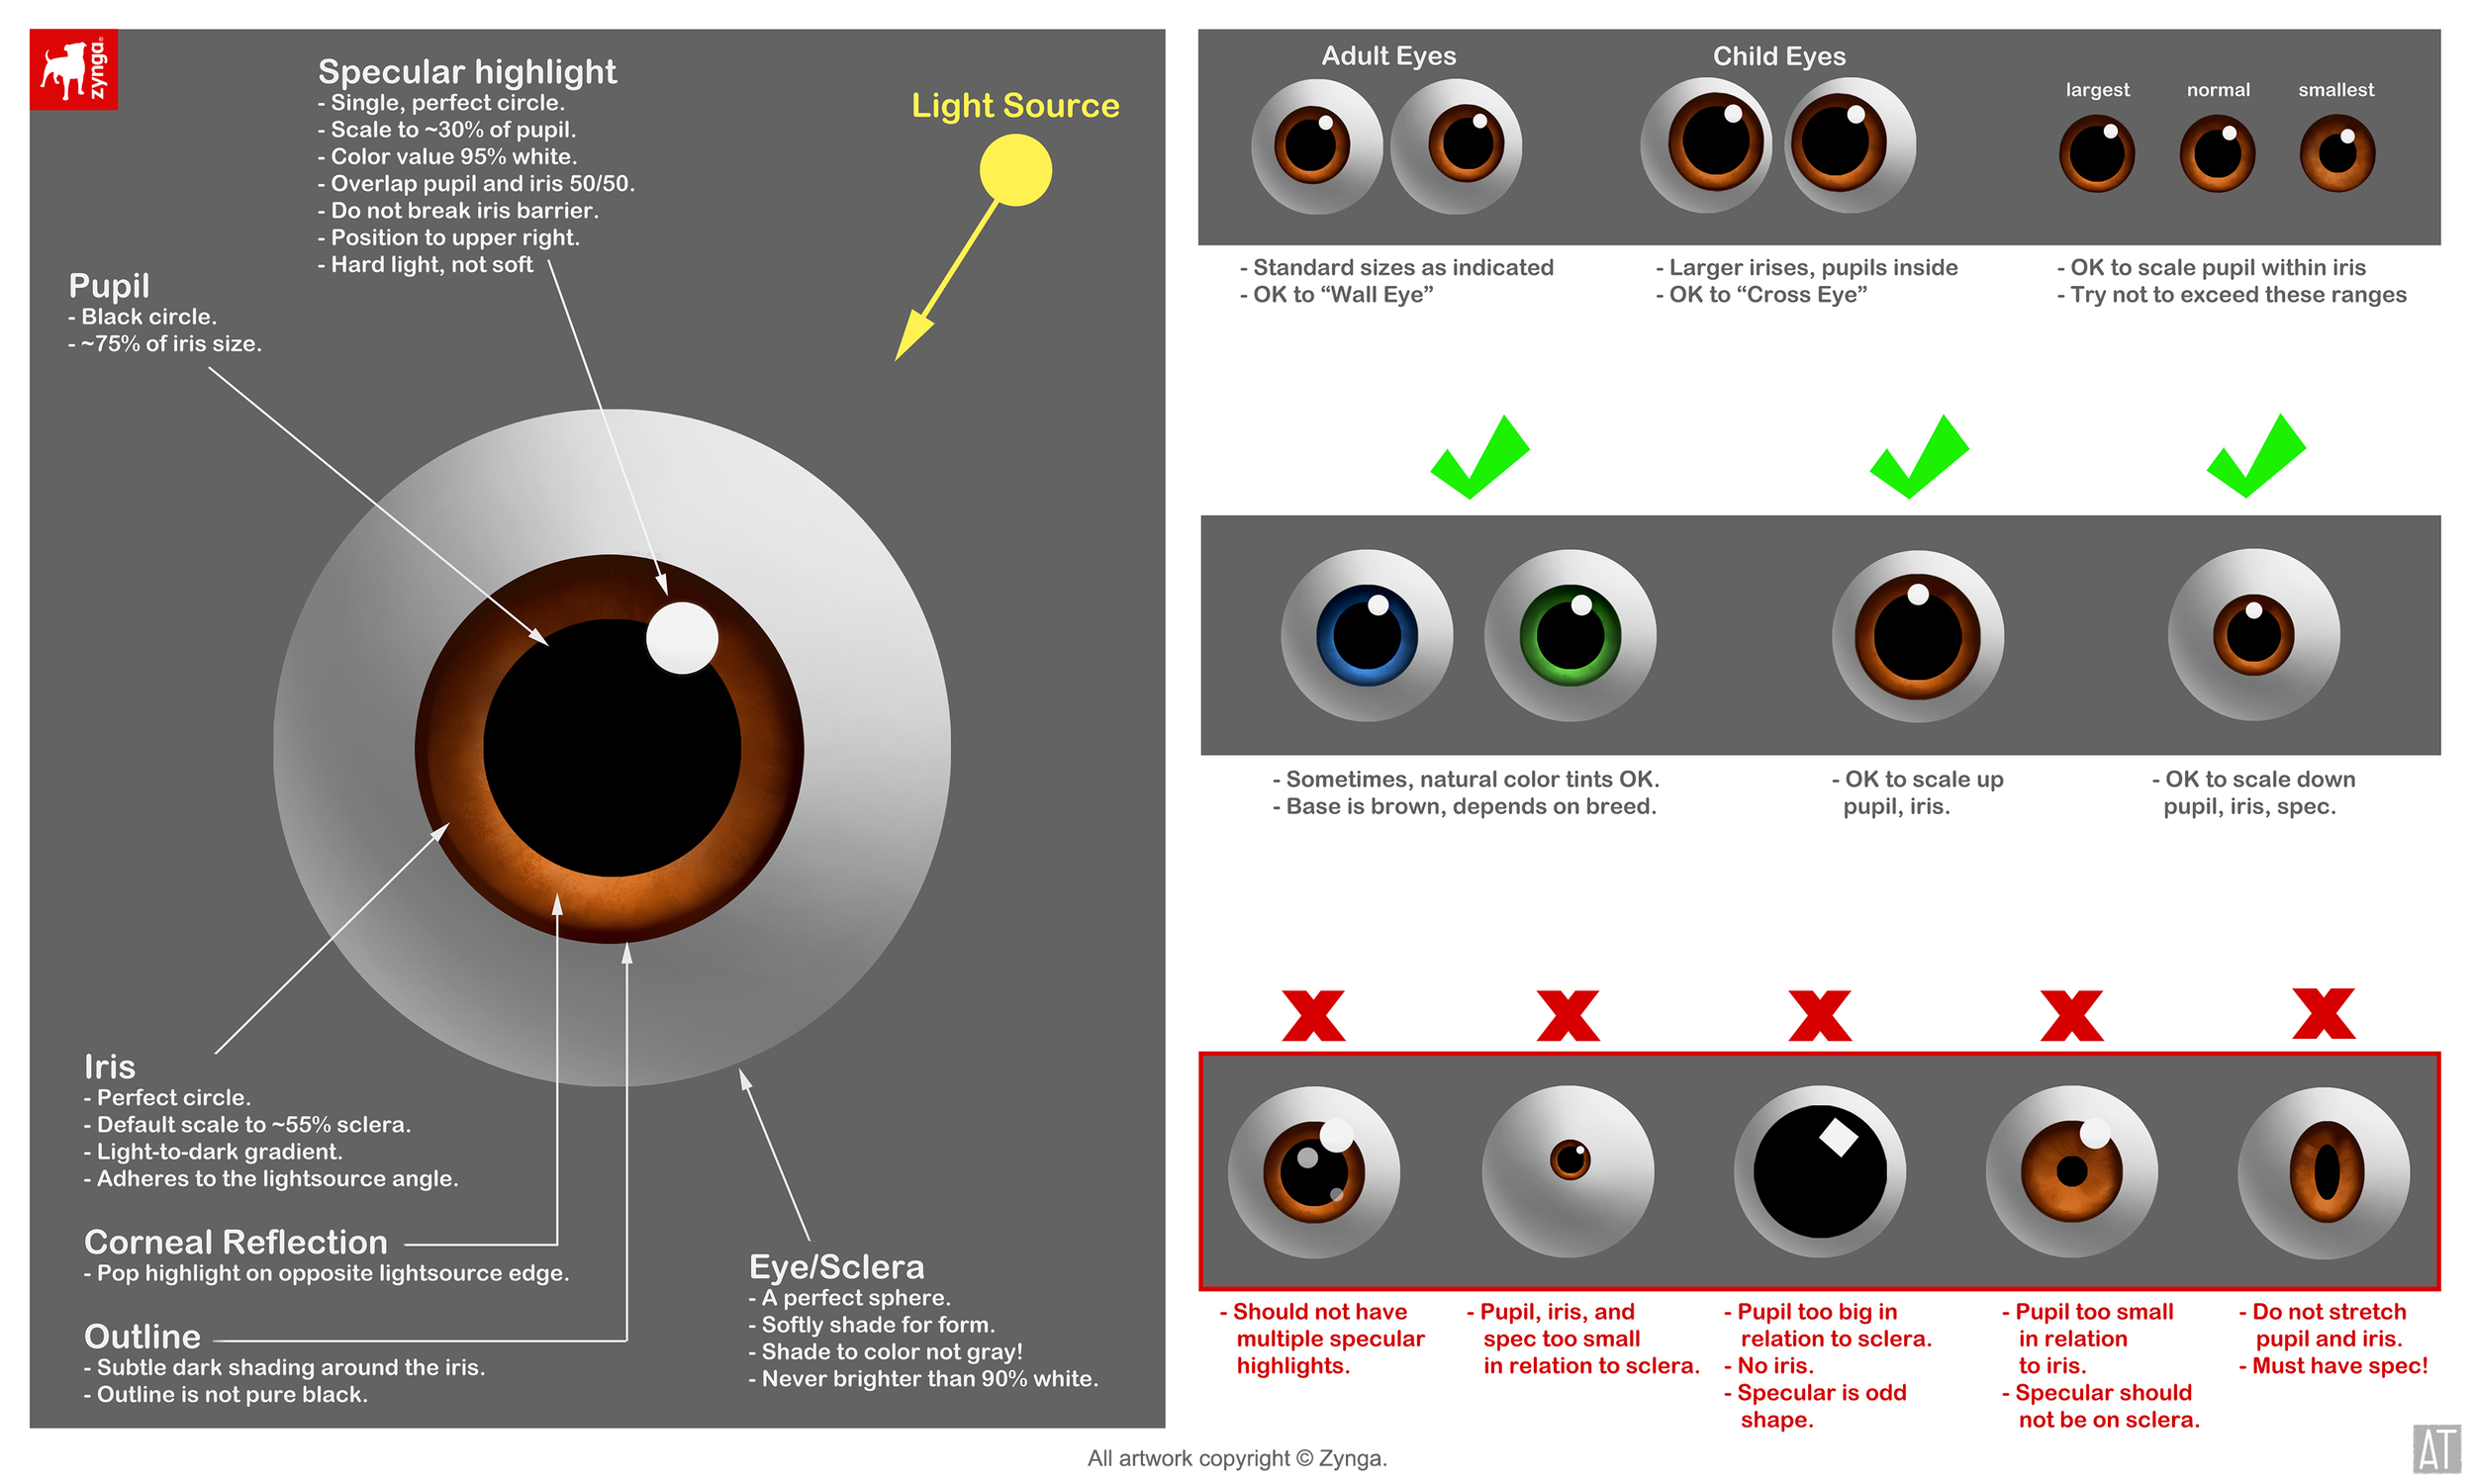 Guide on eye execution made for internal artists and outsourcing.